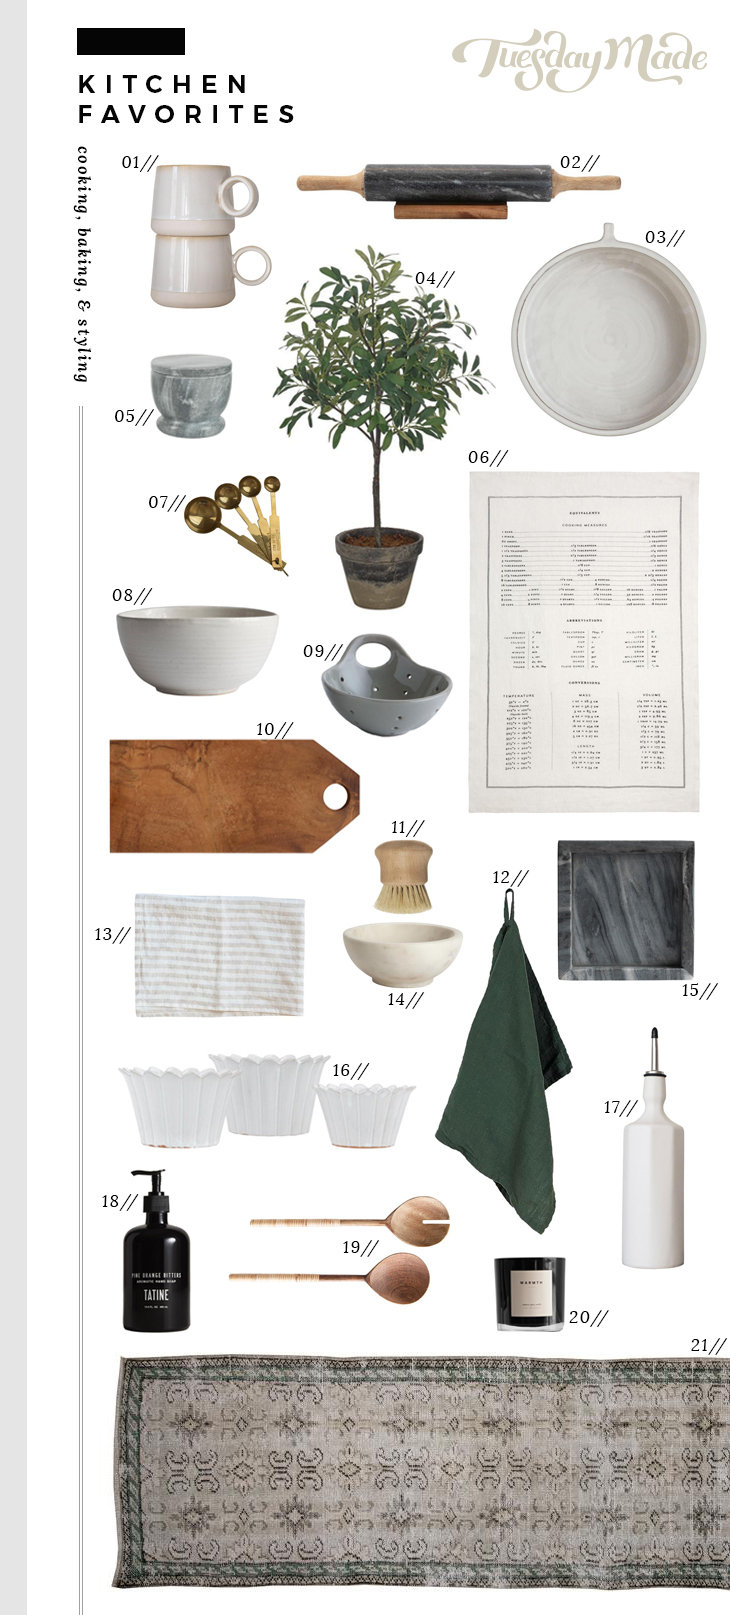 Favorite Kitchen Items From Our Shop - roomfortuesday.com